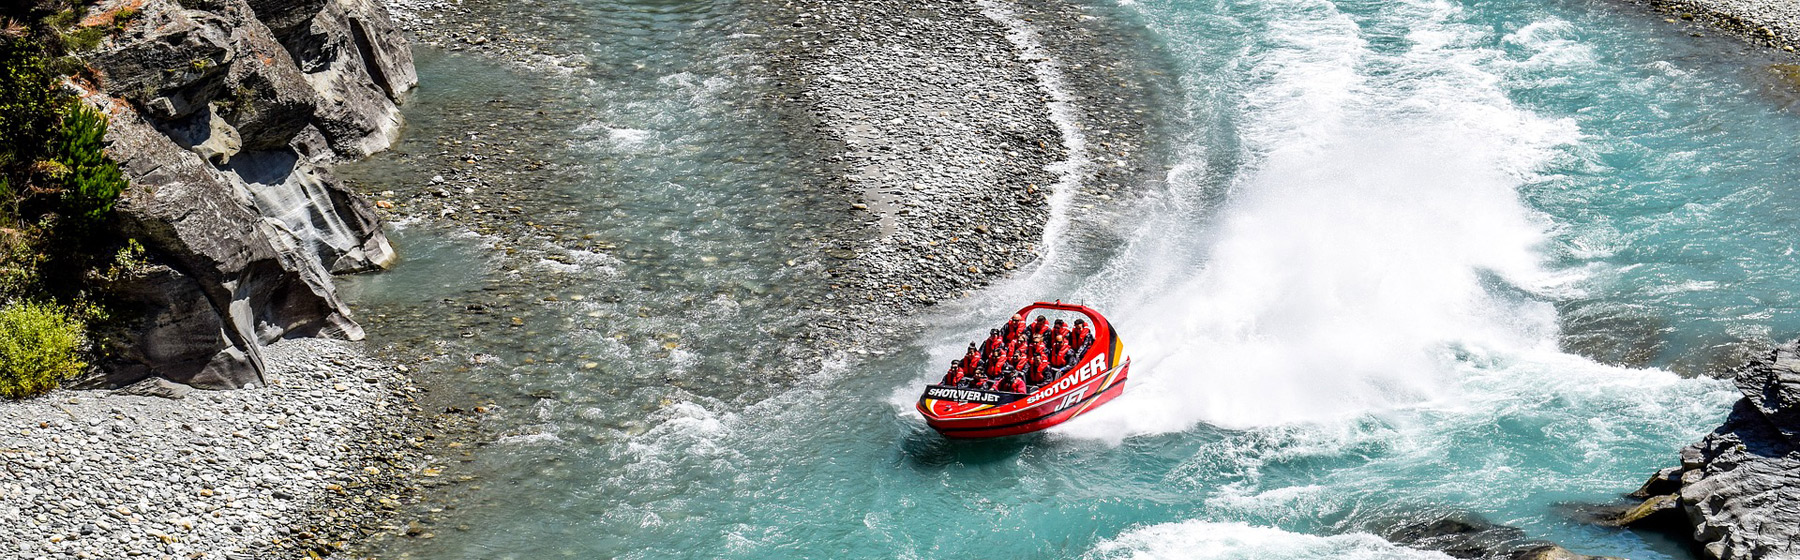 Jetboating Track New Zealand